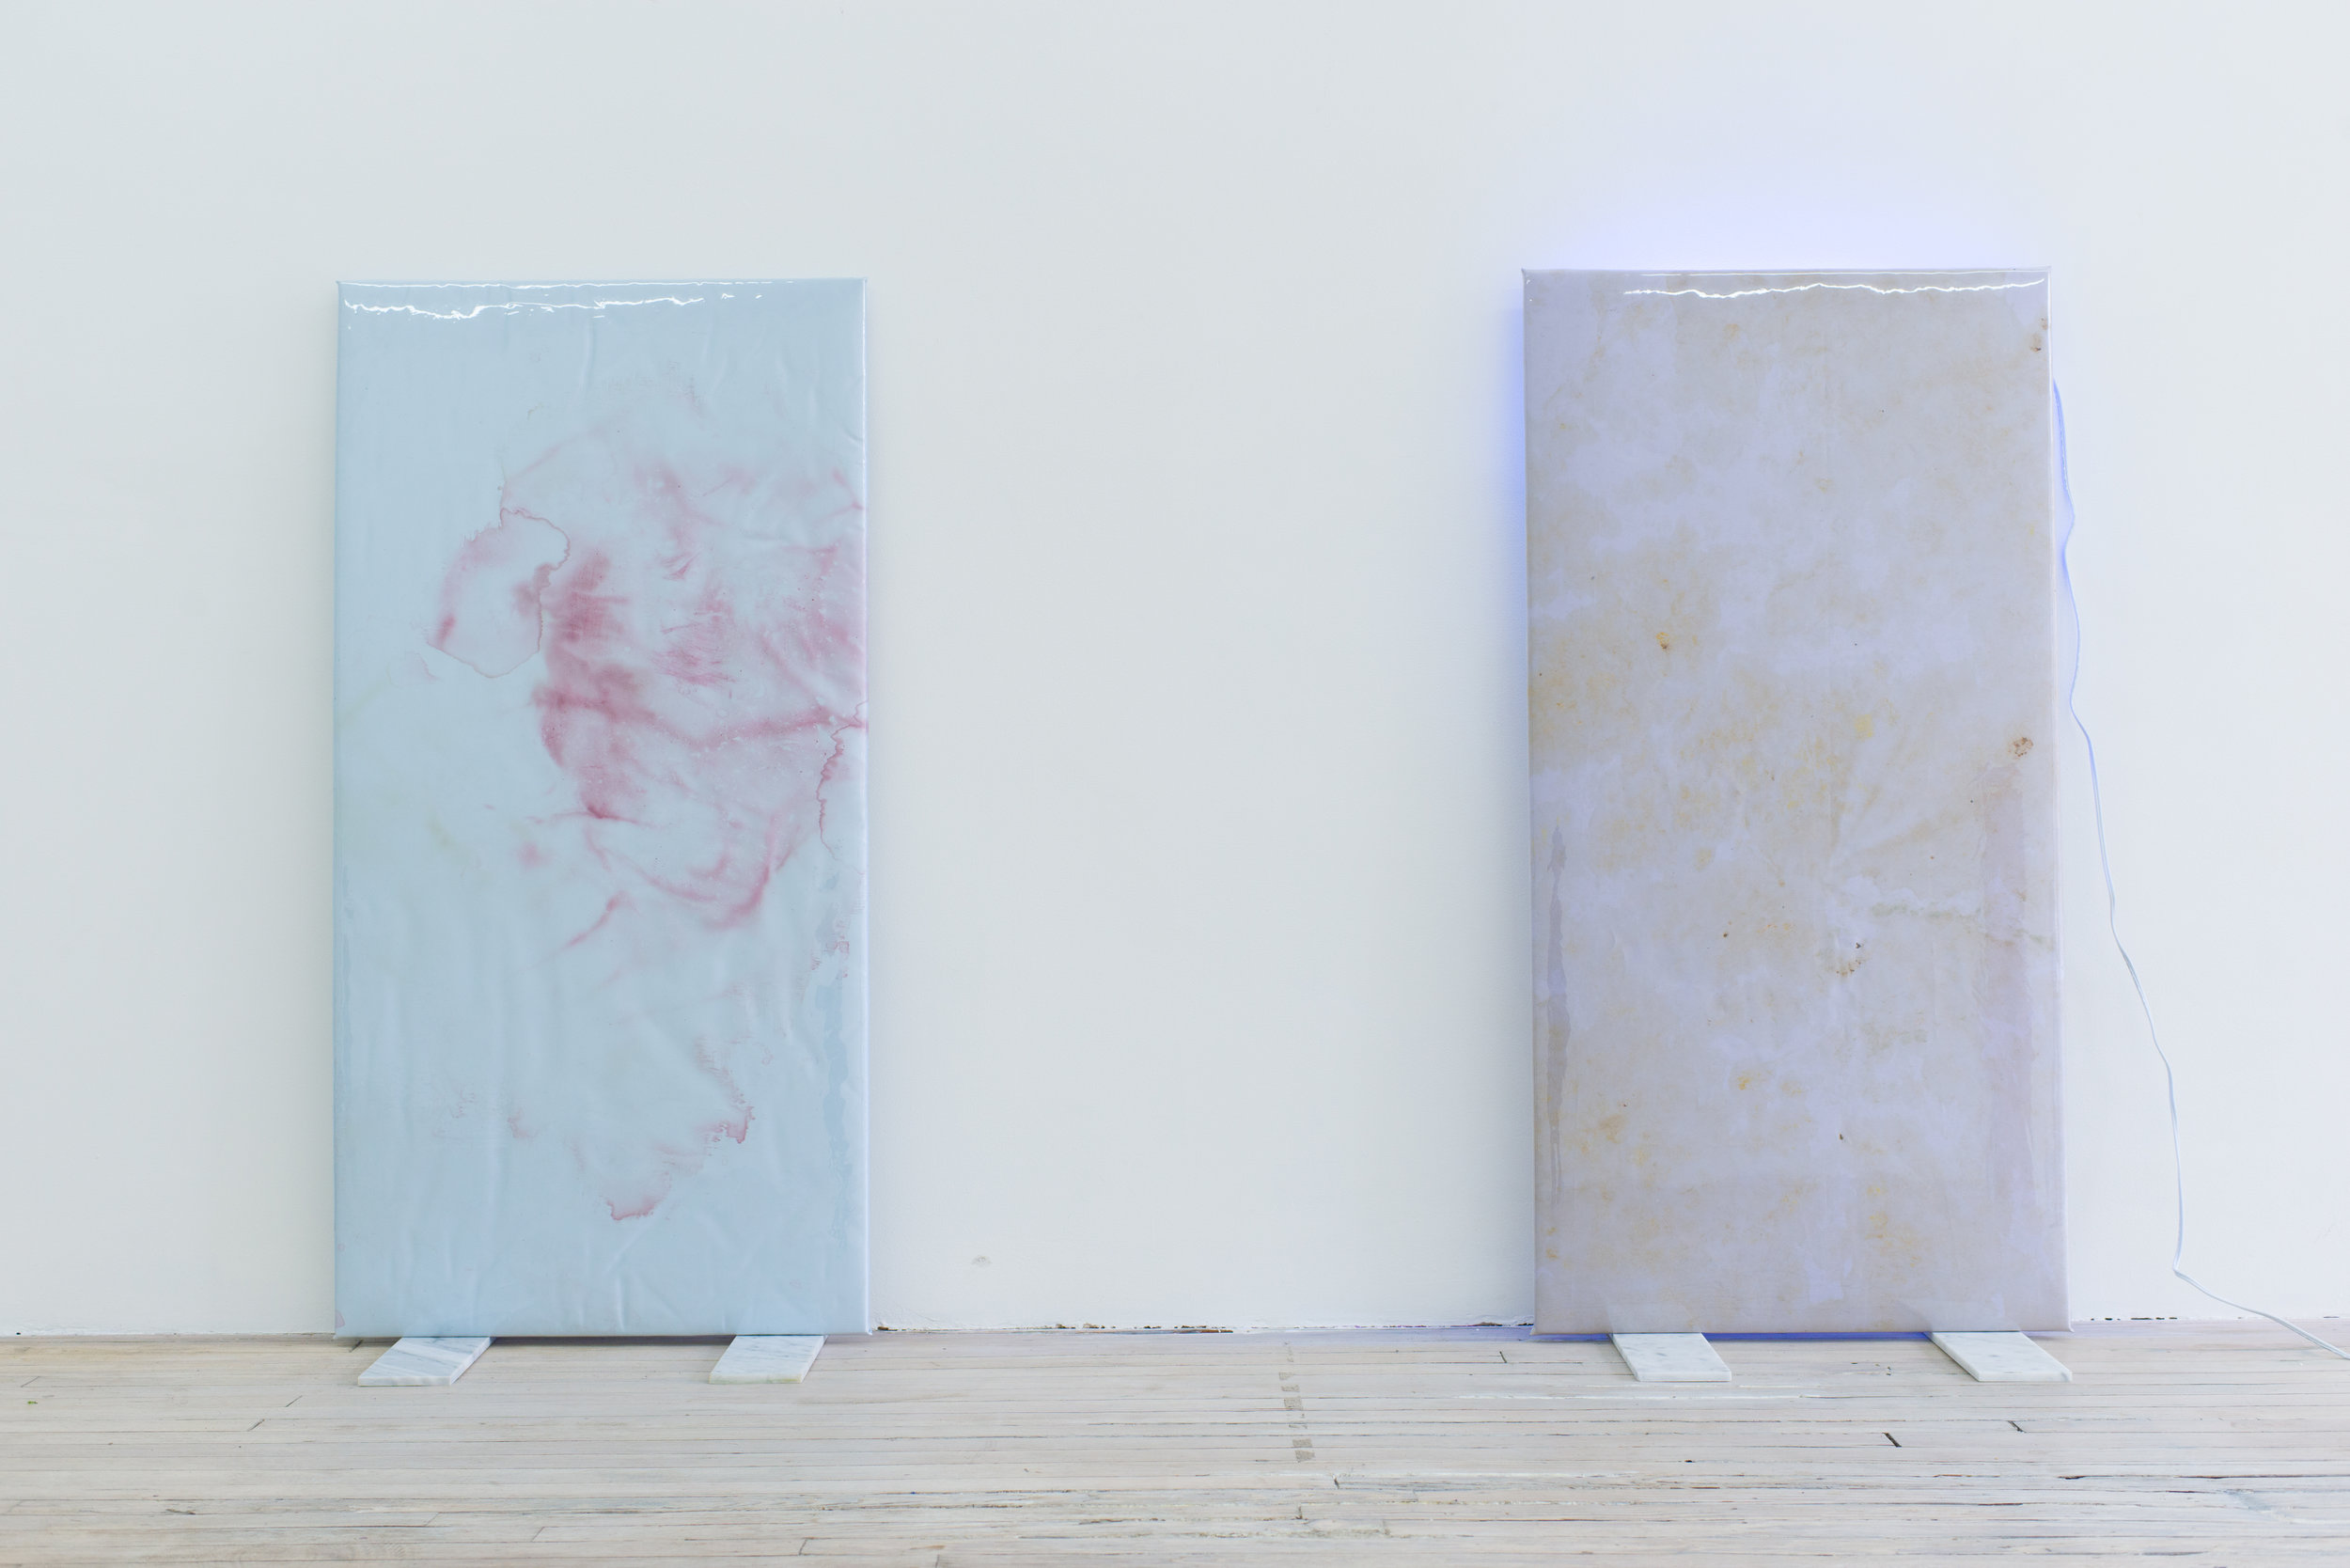 Quay Quinn Wolf   Selection No.1,  2018 Red carnation pigments on blue satin, padding, wood, soft PVC sheet, marble tiles 48 x 24 x 12 inches   Quay Quinn Wolf   Selection No.3,  2018 Lily pigments on lavender satin, padding, wood, soft PVC sheet, marble tiles, back lighting, extension cord 48 x 24 x 12 inches